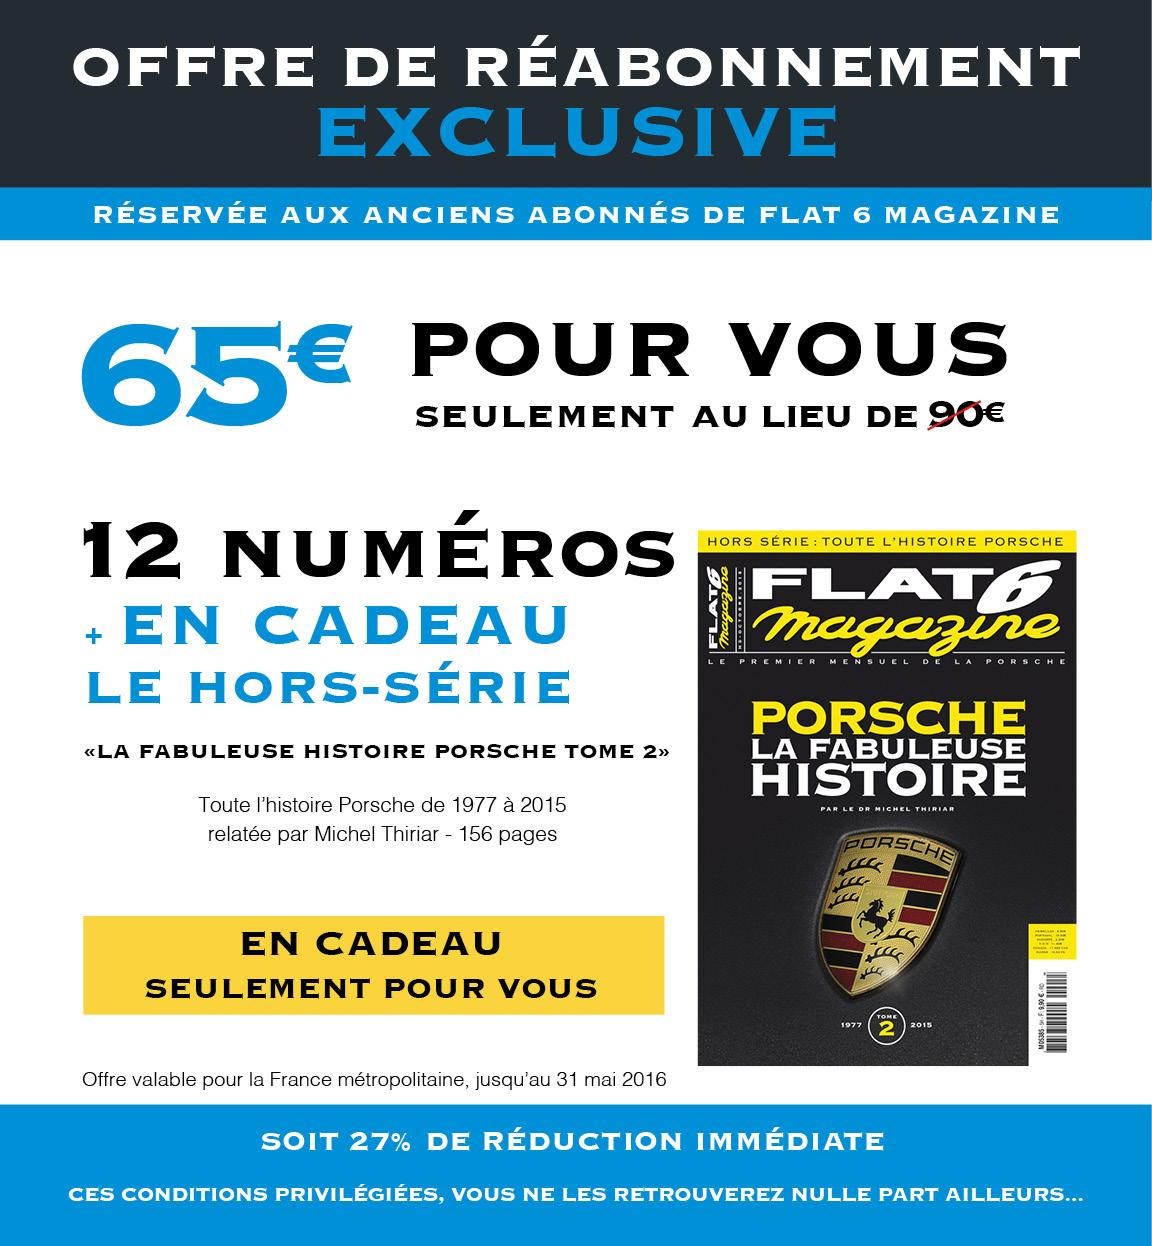 Offre exclusive france